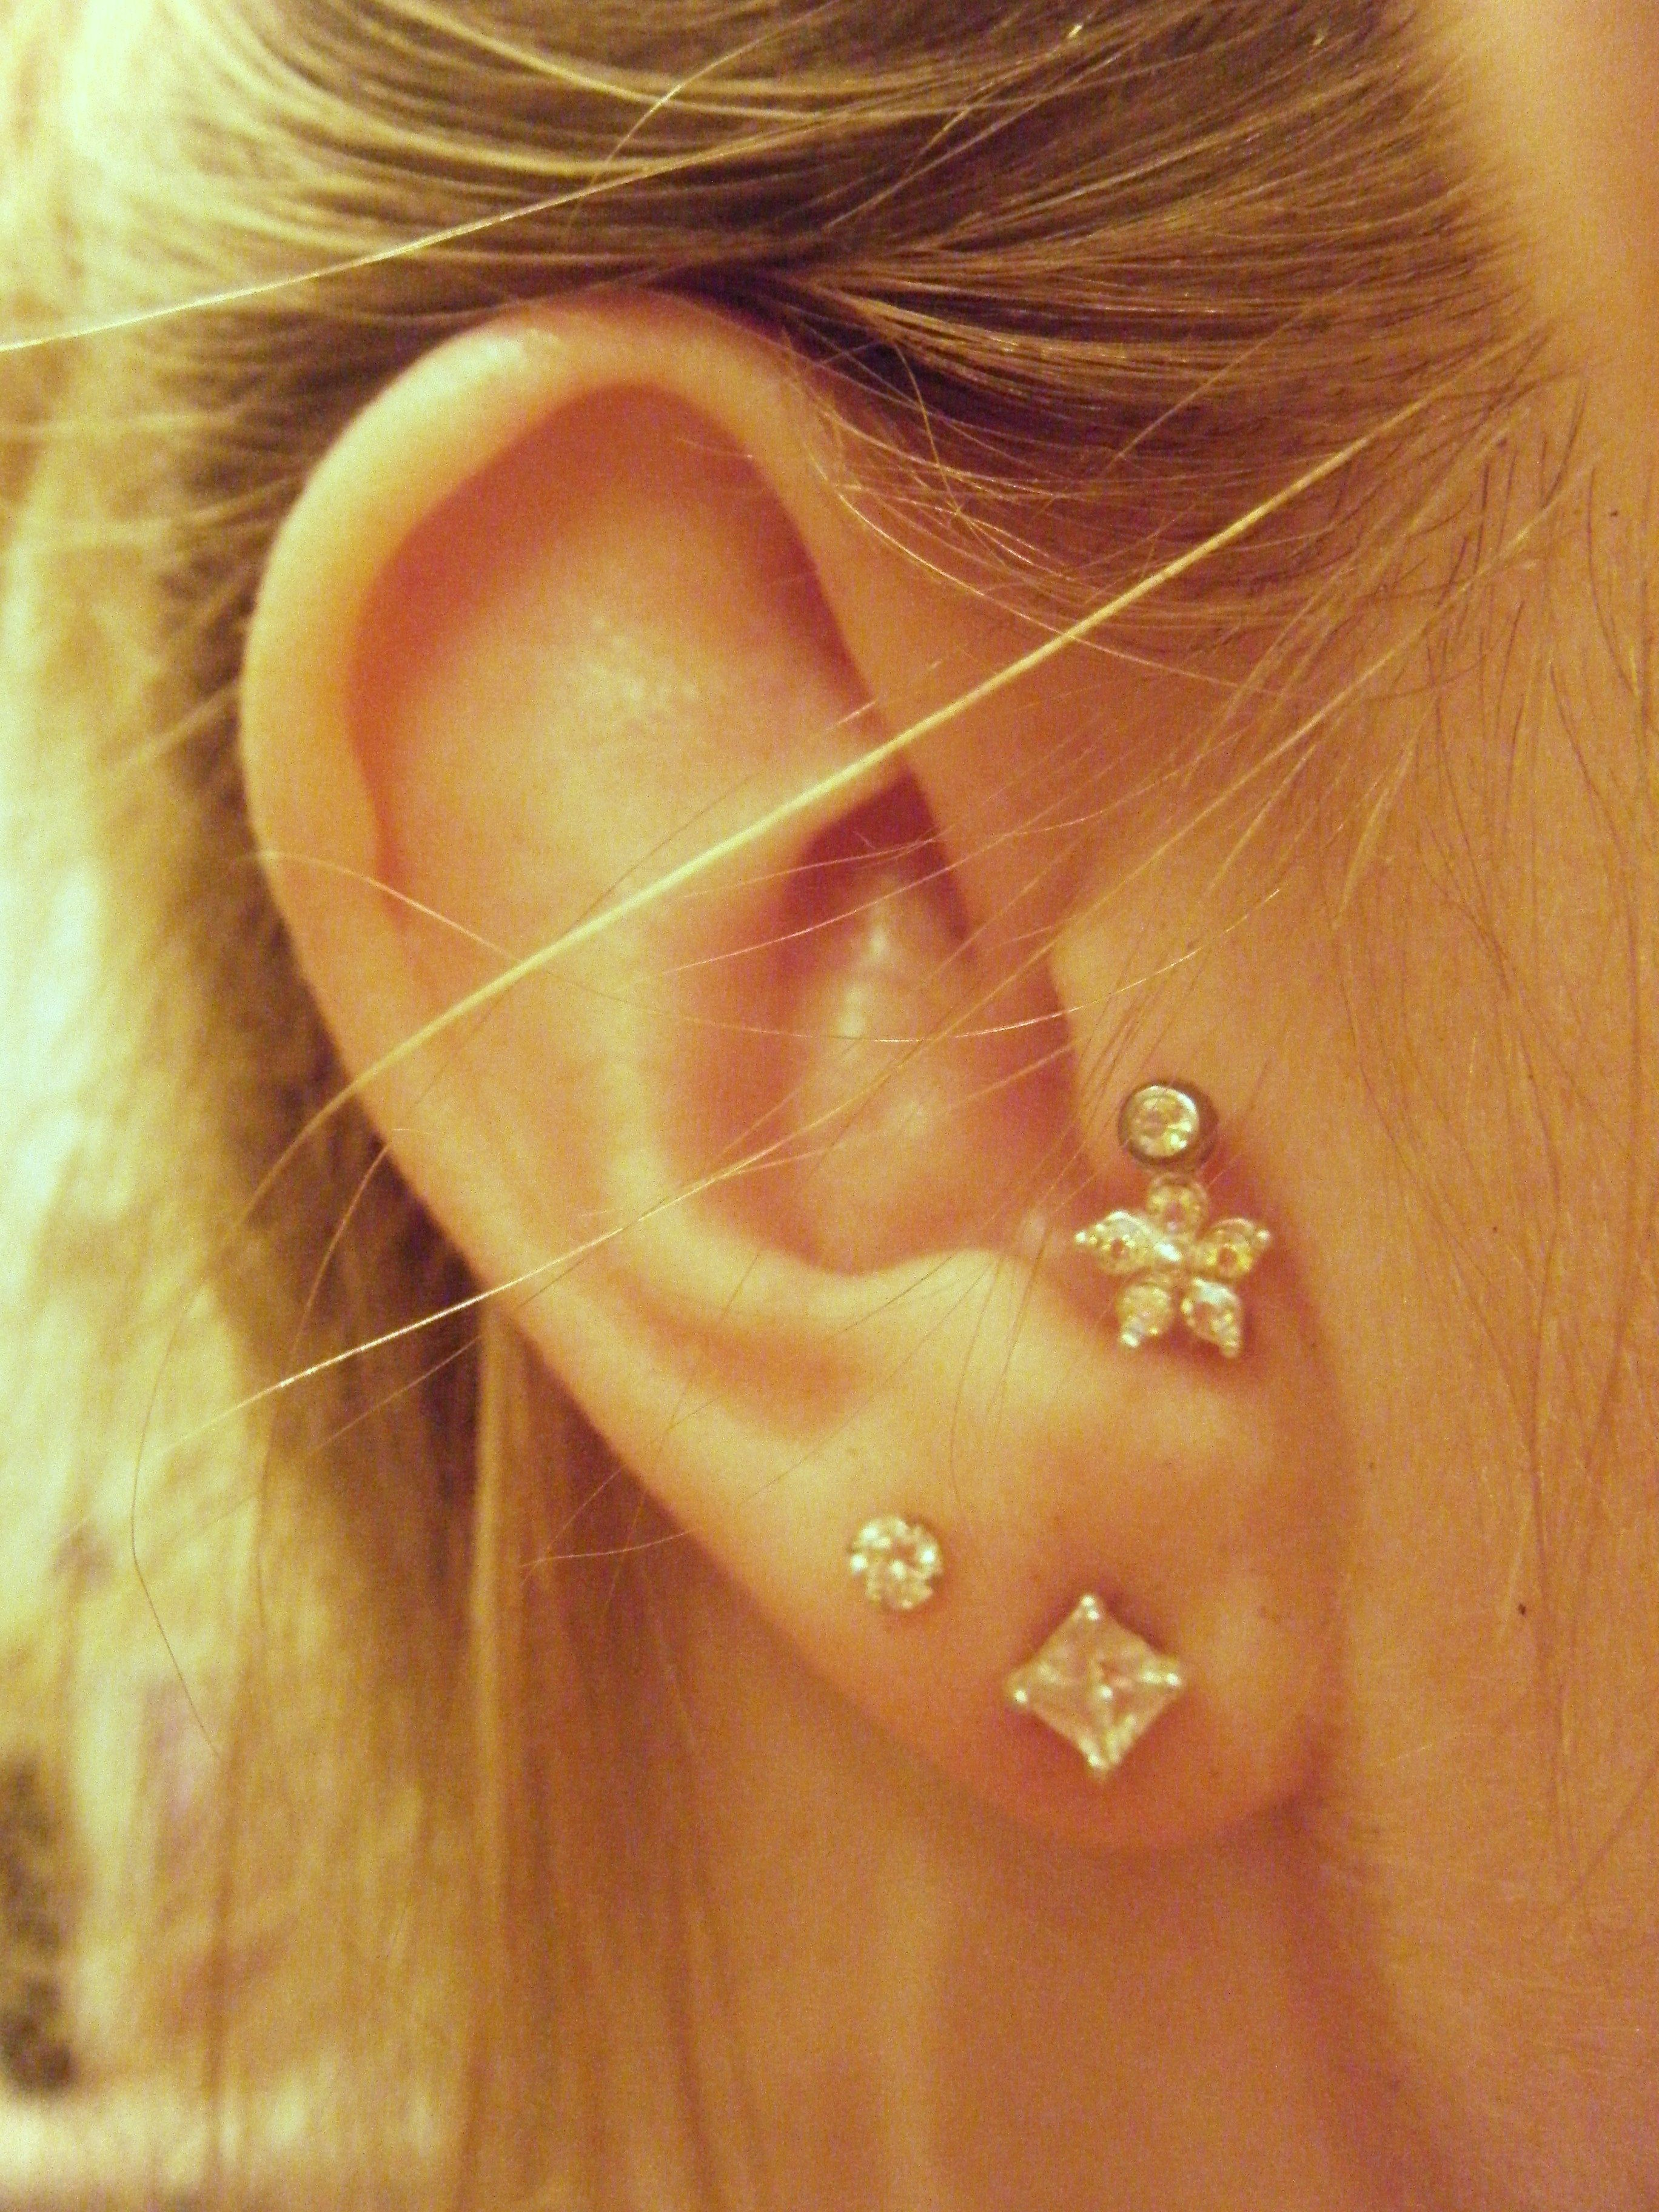 I need new Tragus jewelry earrings and tattoos Pinterest